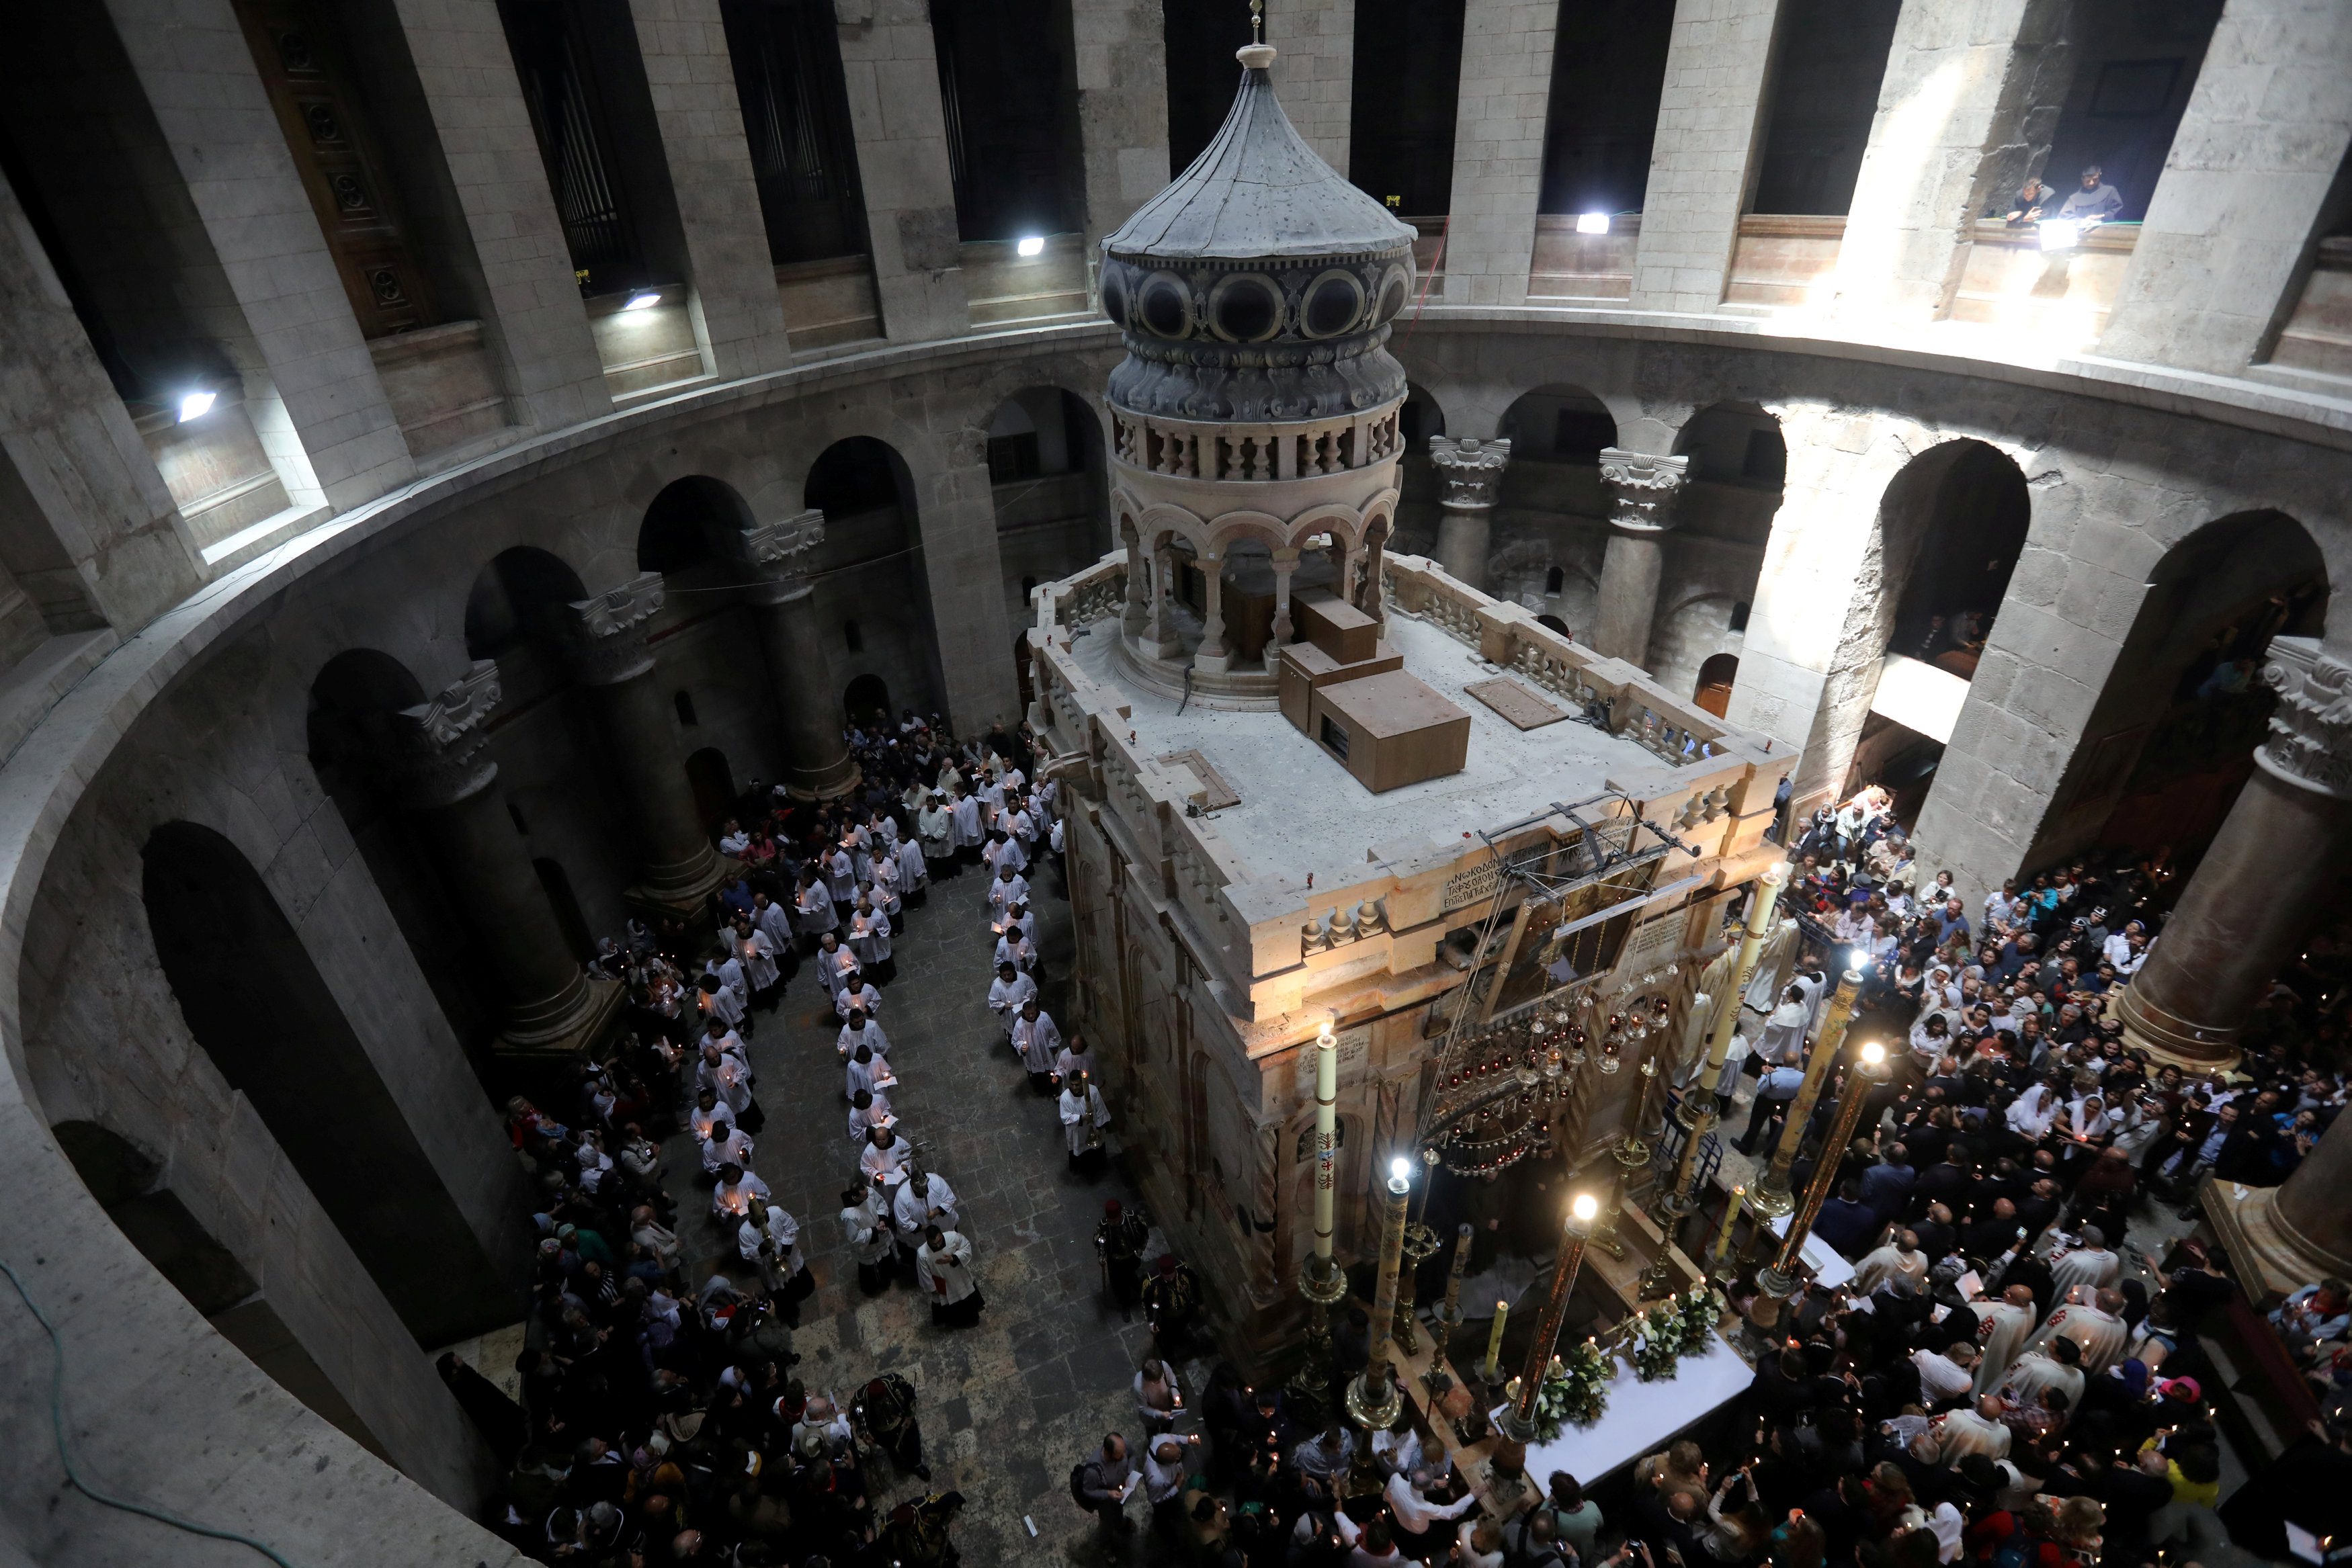 Closure of the Holy Sepulchre is a Dark Day for All